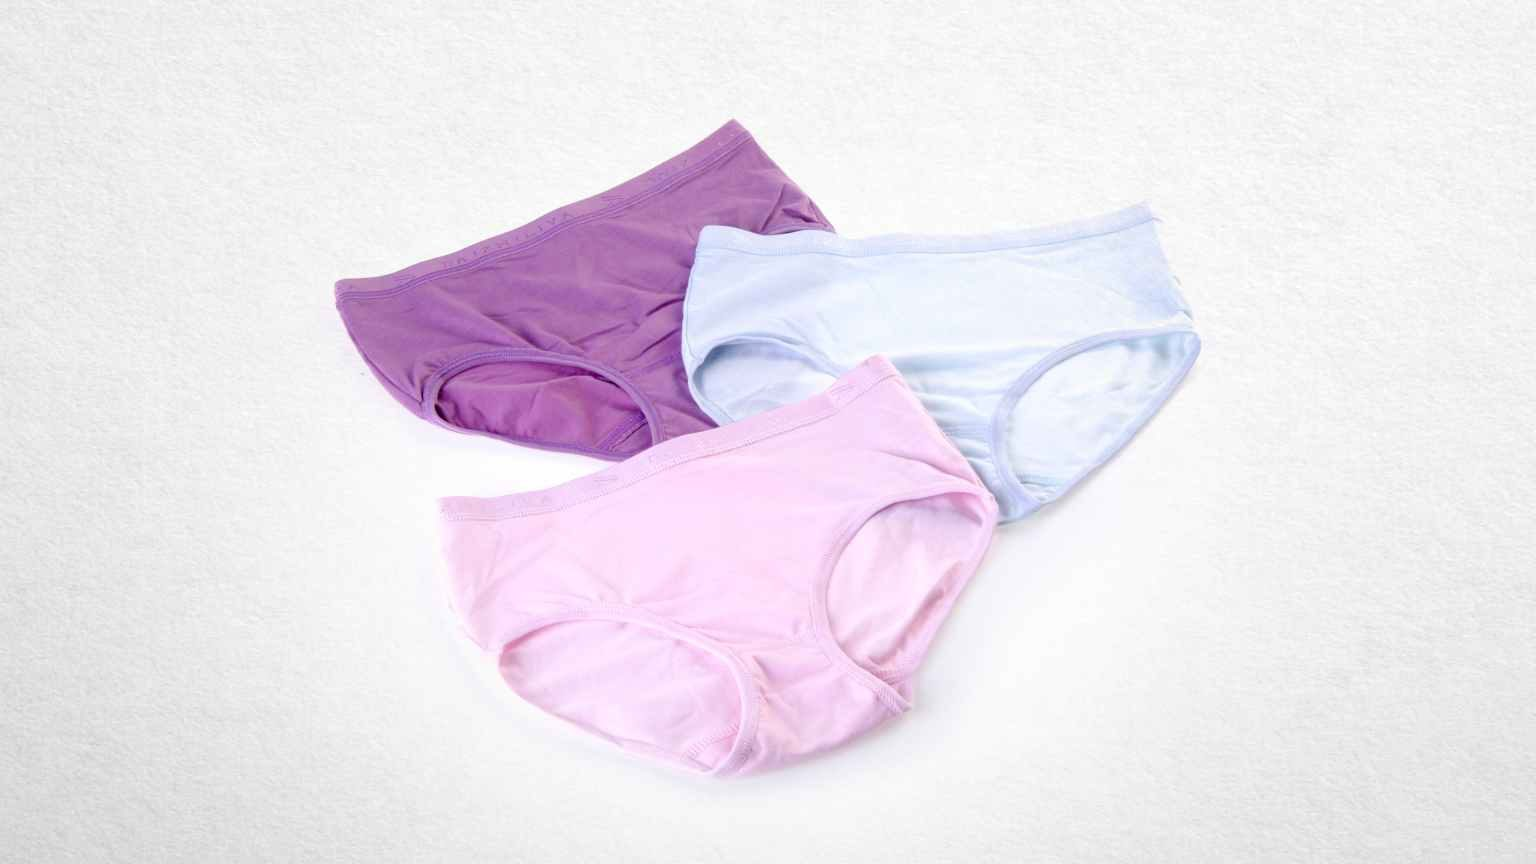 panty or close up women panties on background